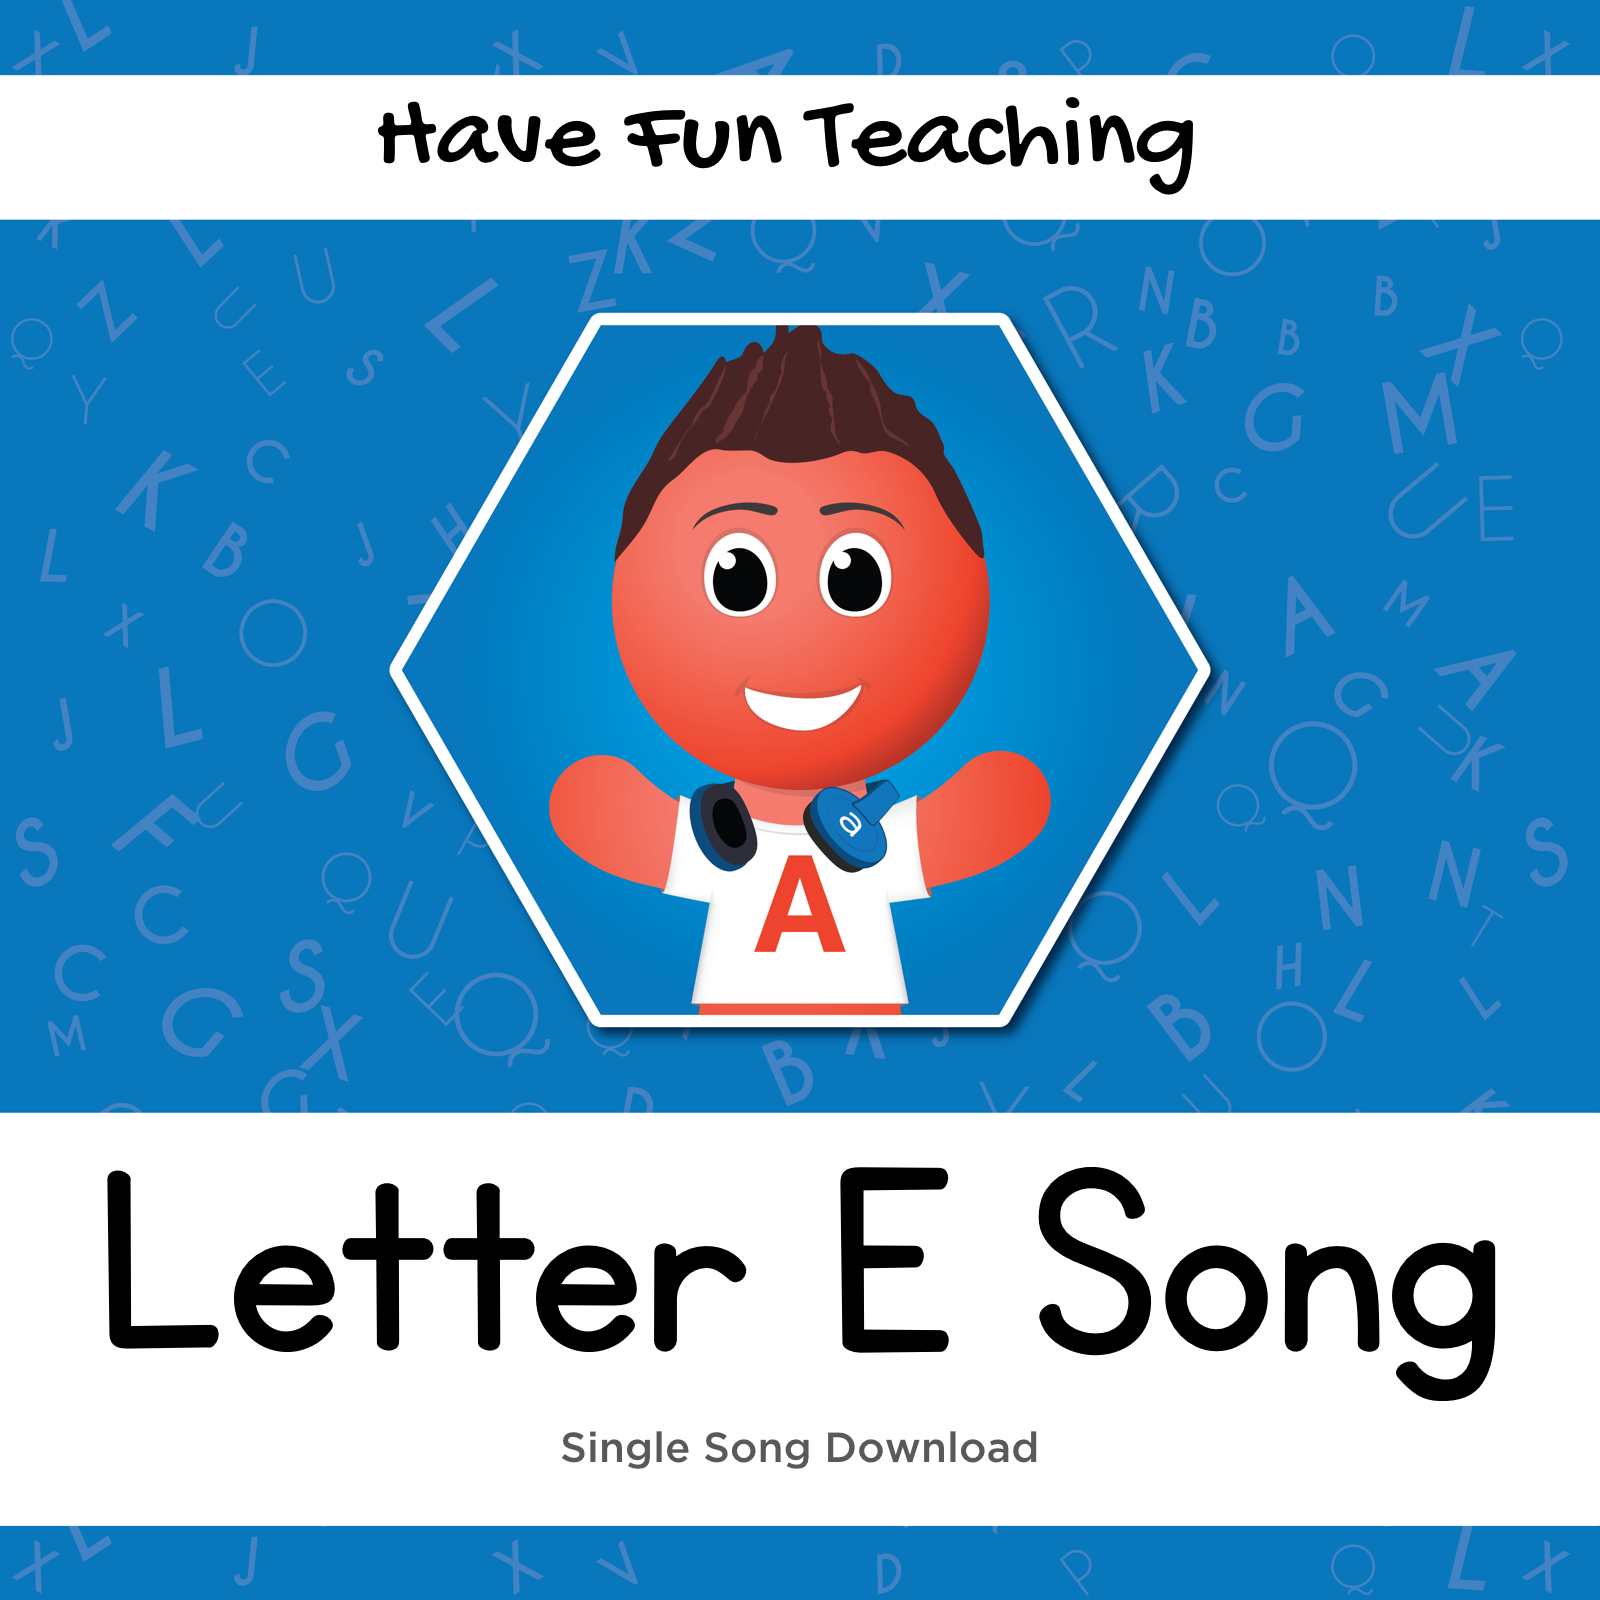 Letter E Song (Animated Music Video)